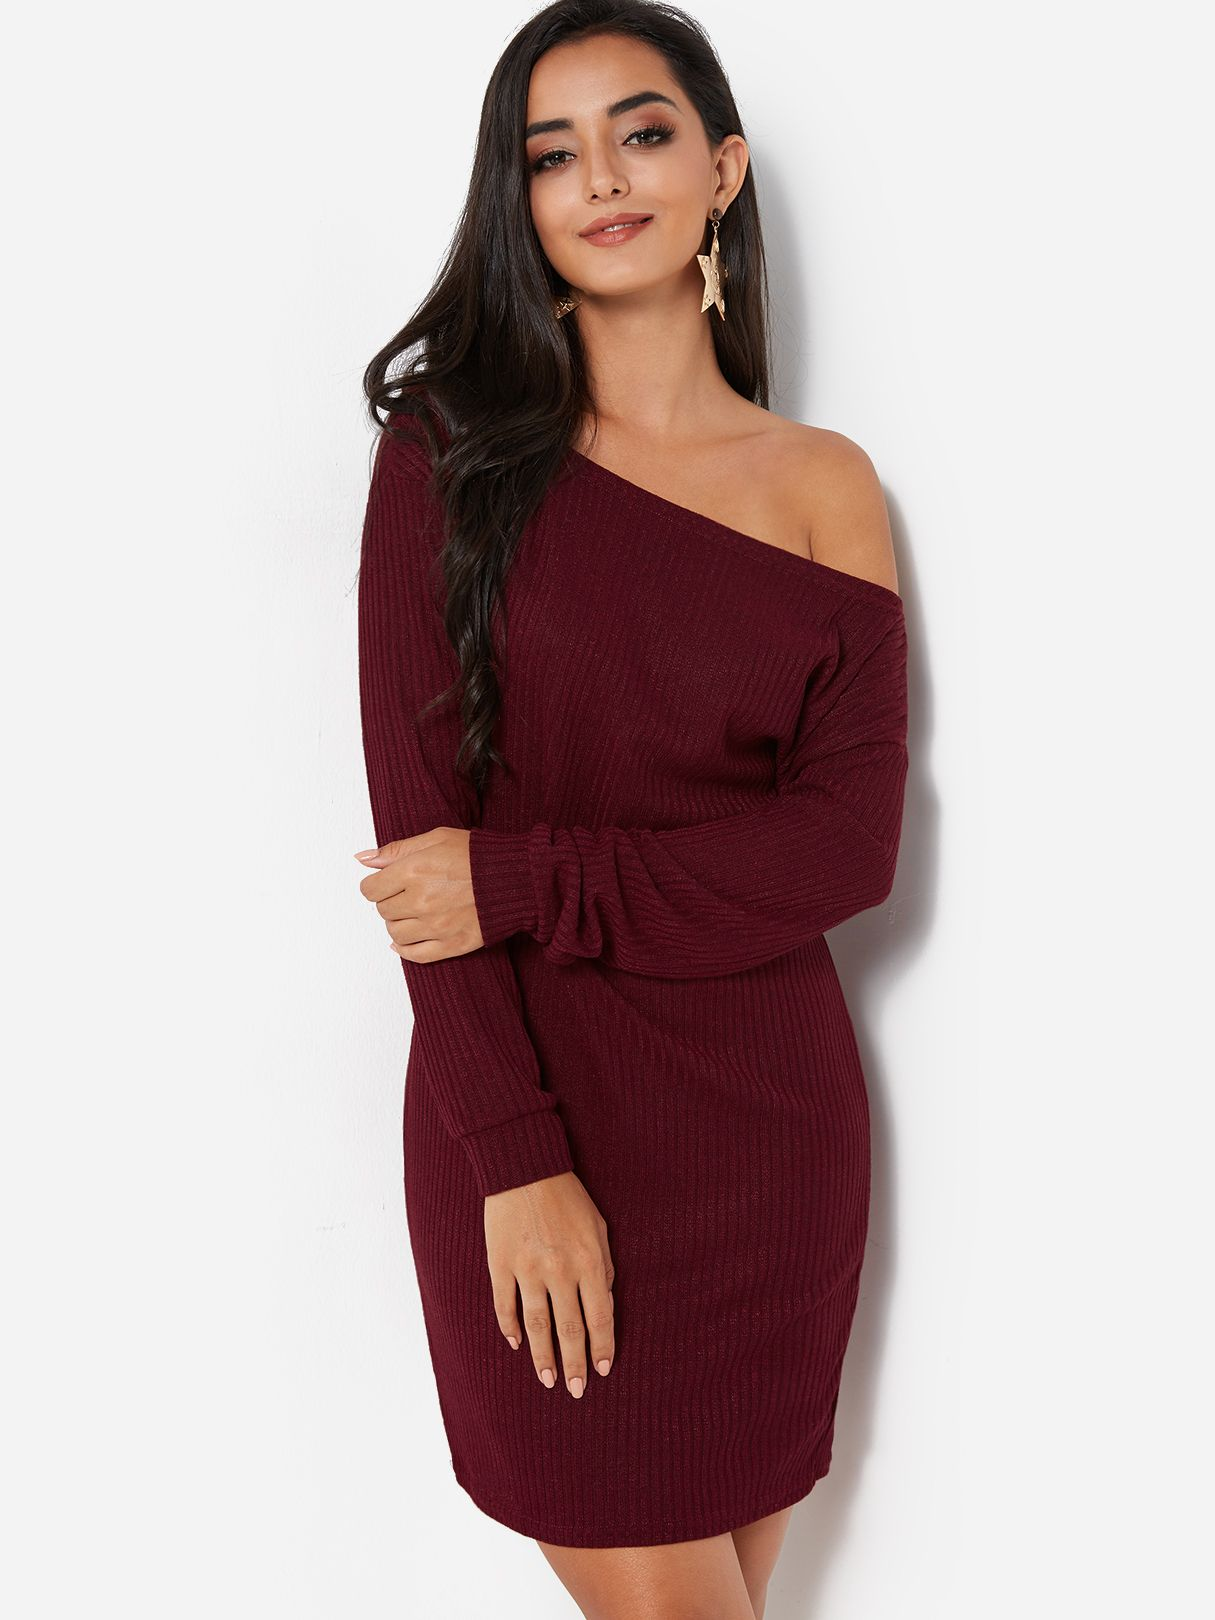 537312d4ab0 Burgundy One Shoulder Long Sleeves Knitted Sweater Dress - US$13.95 ...